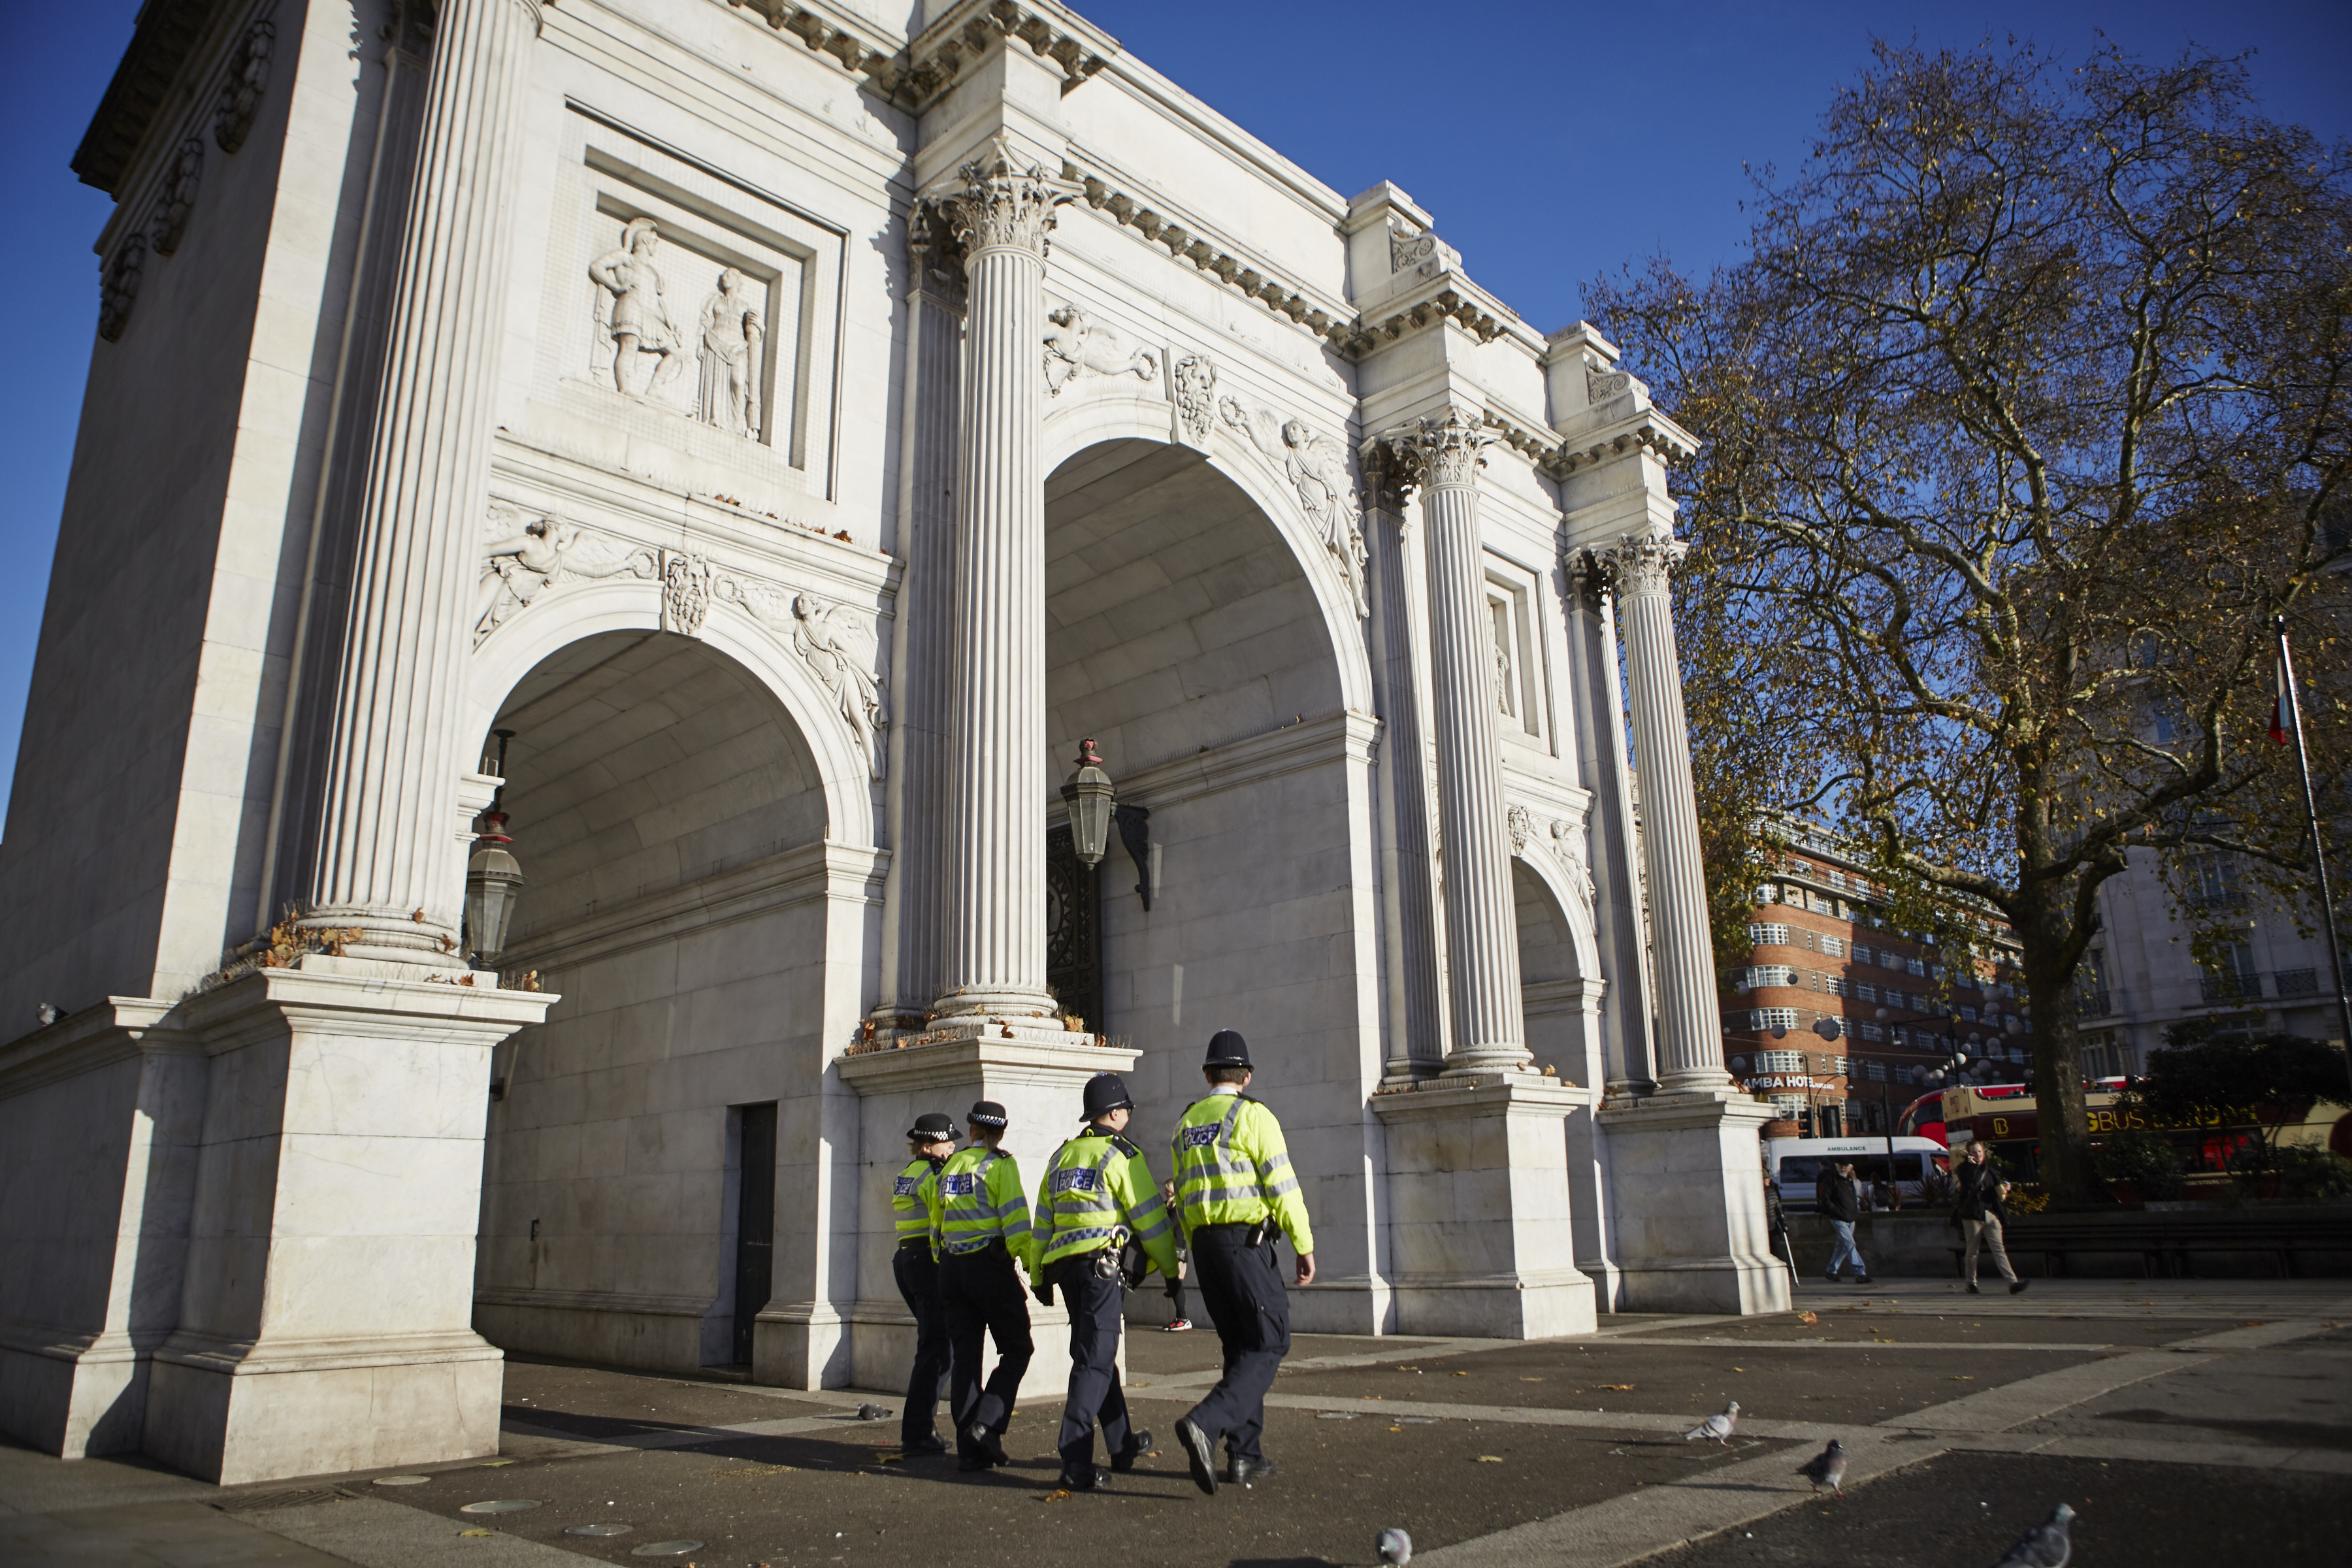 John Betjeman Wrote a Poem About Marble Arch